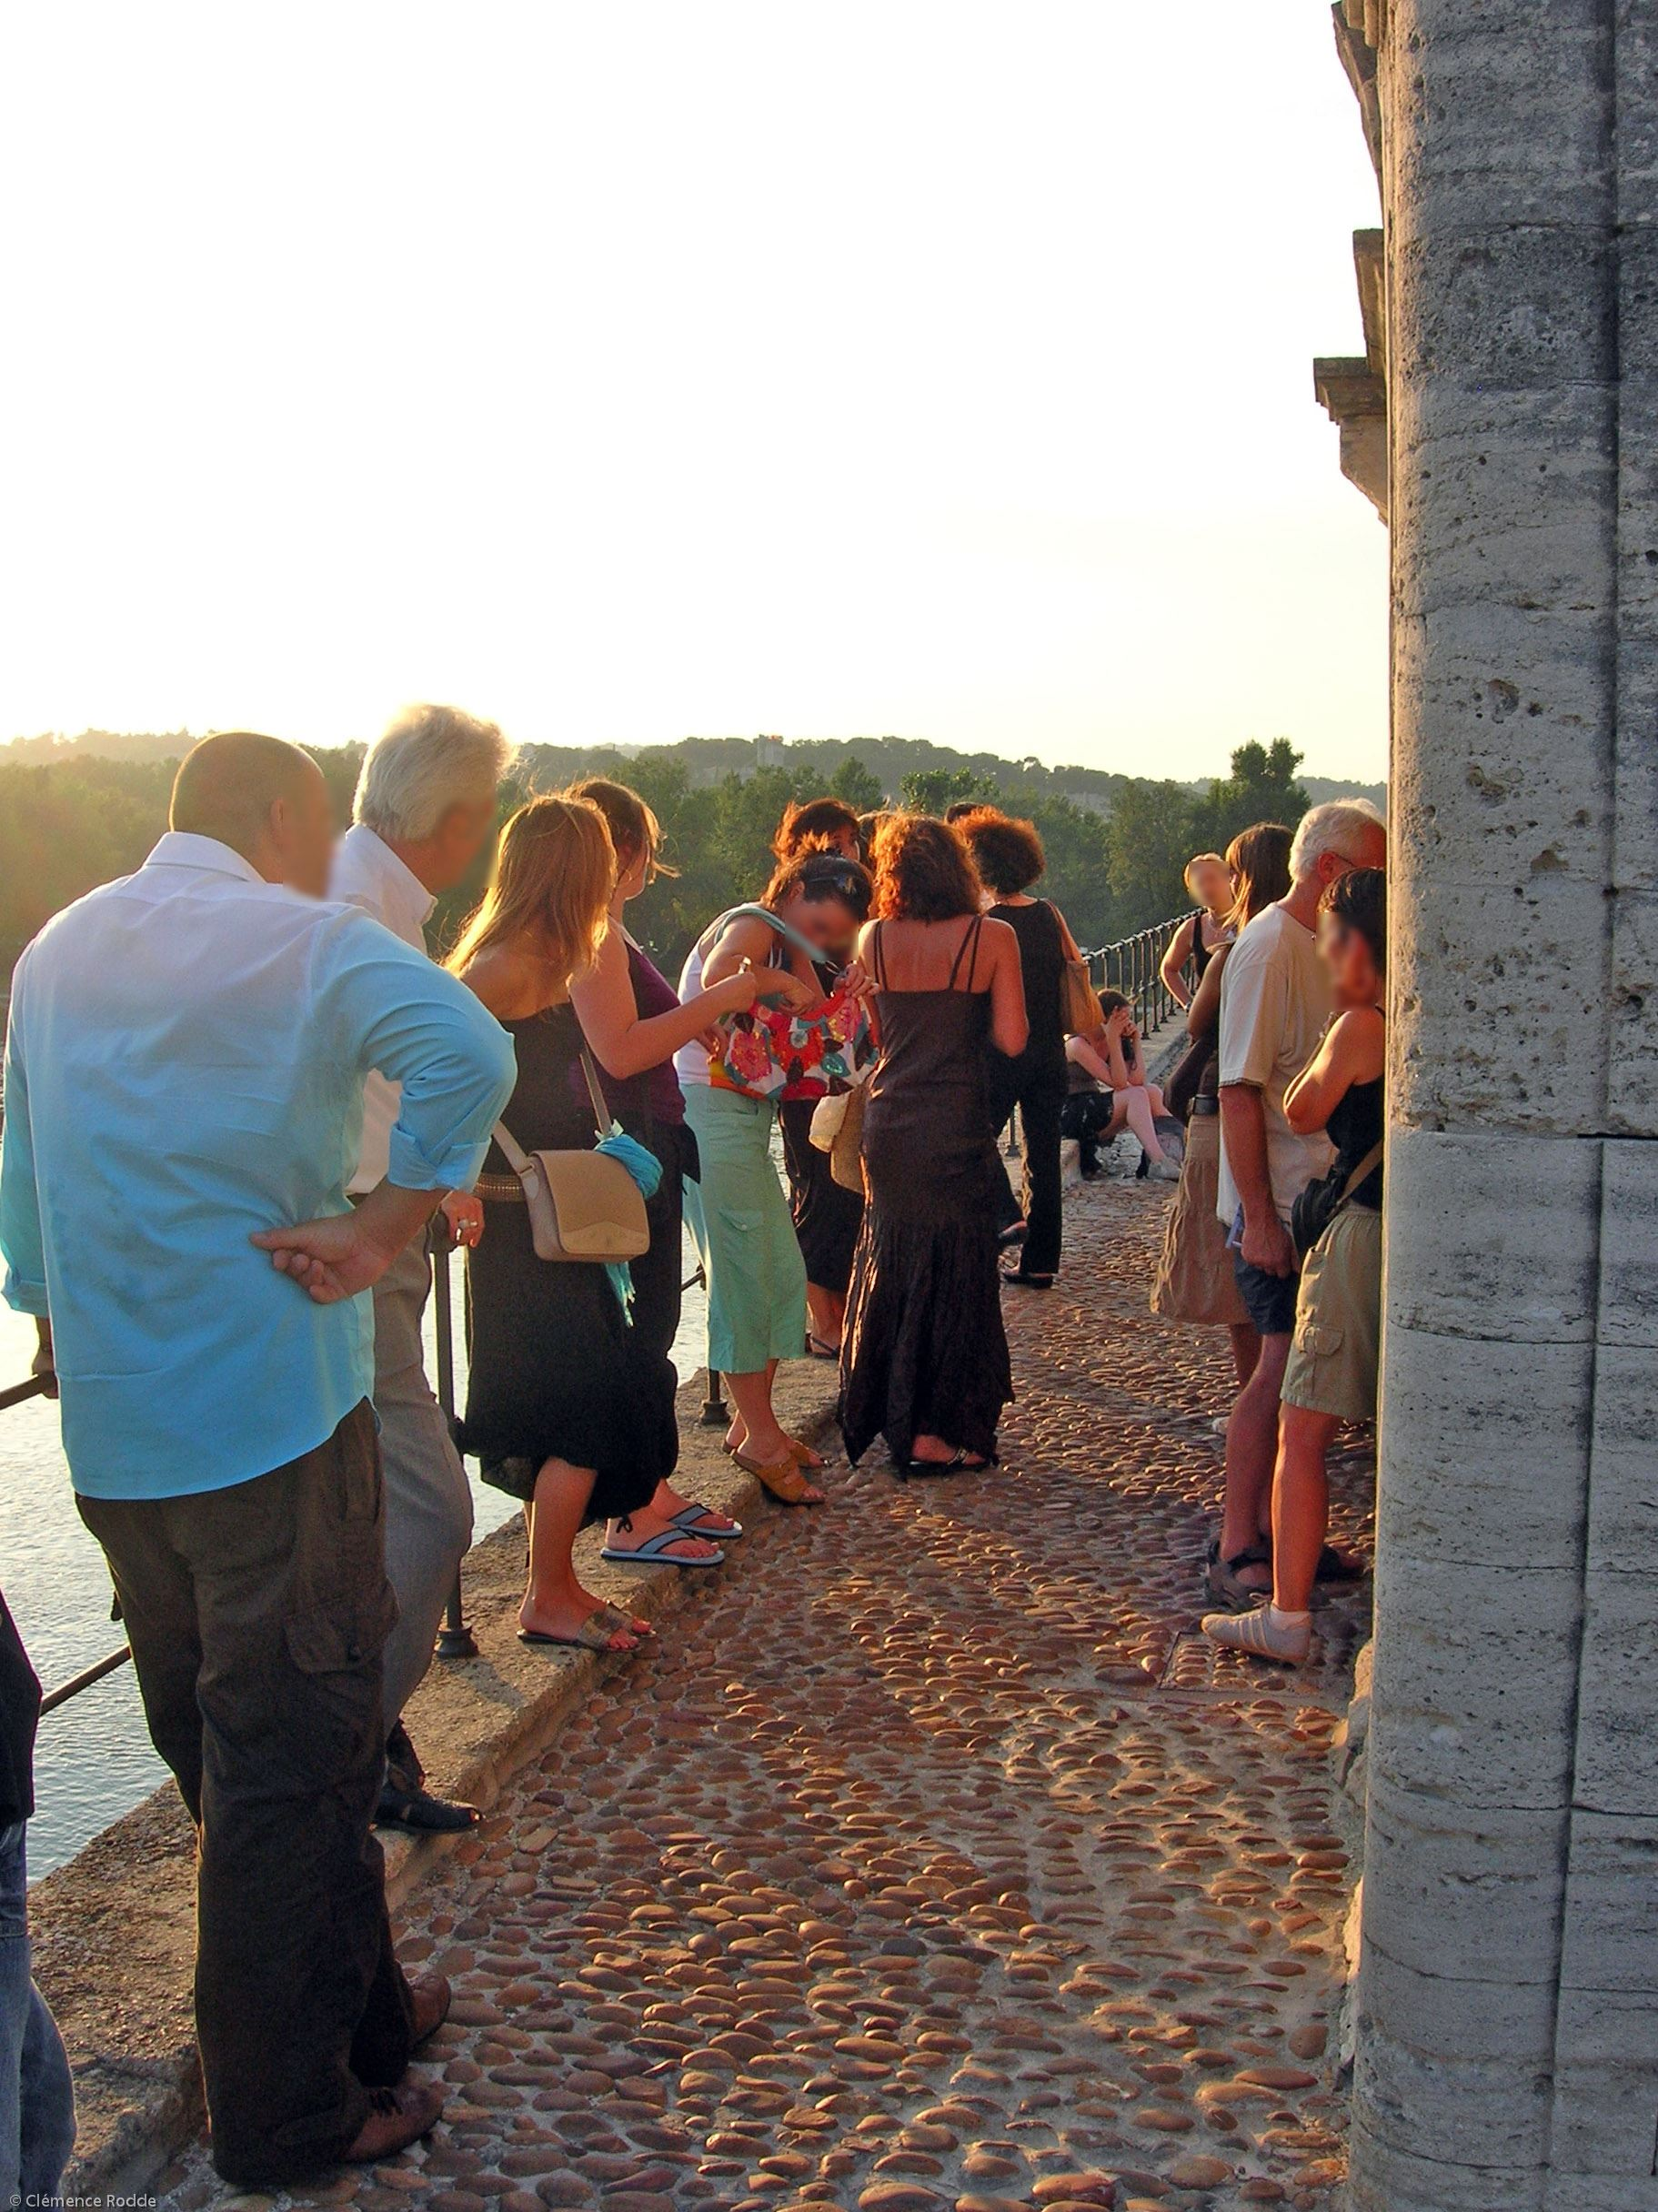 Avignon on a summer evening